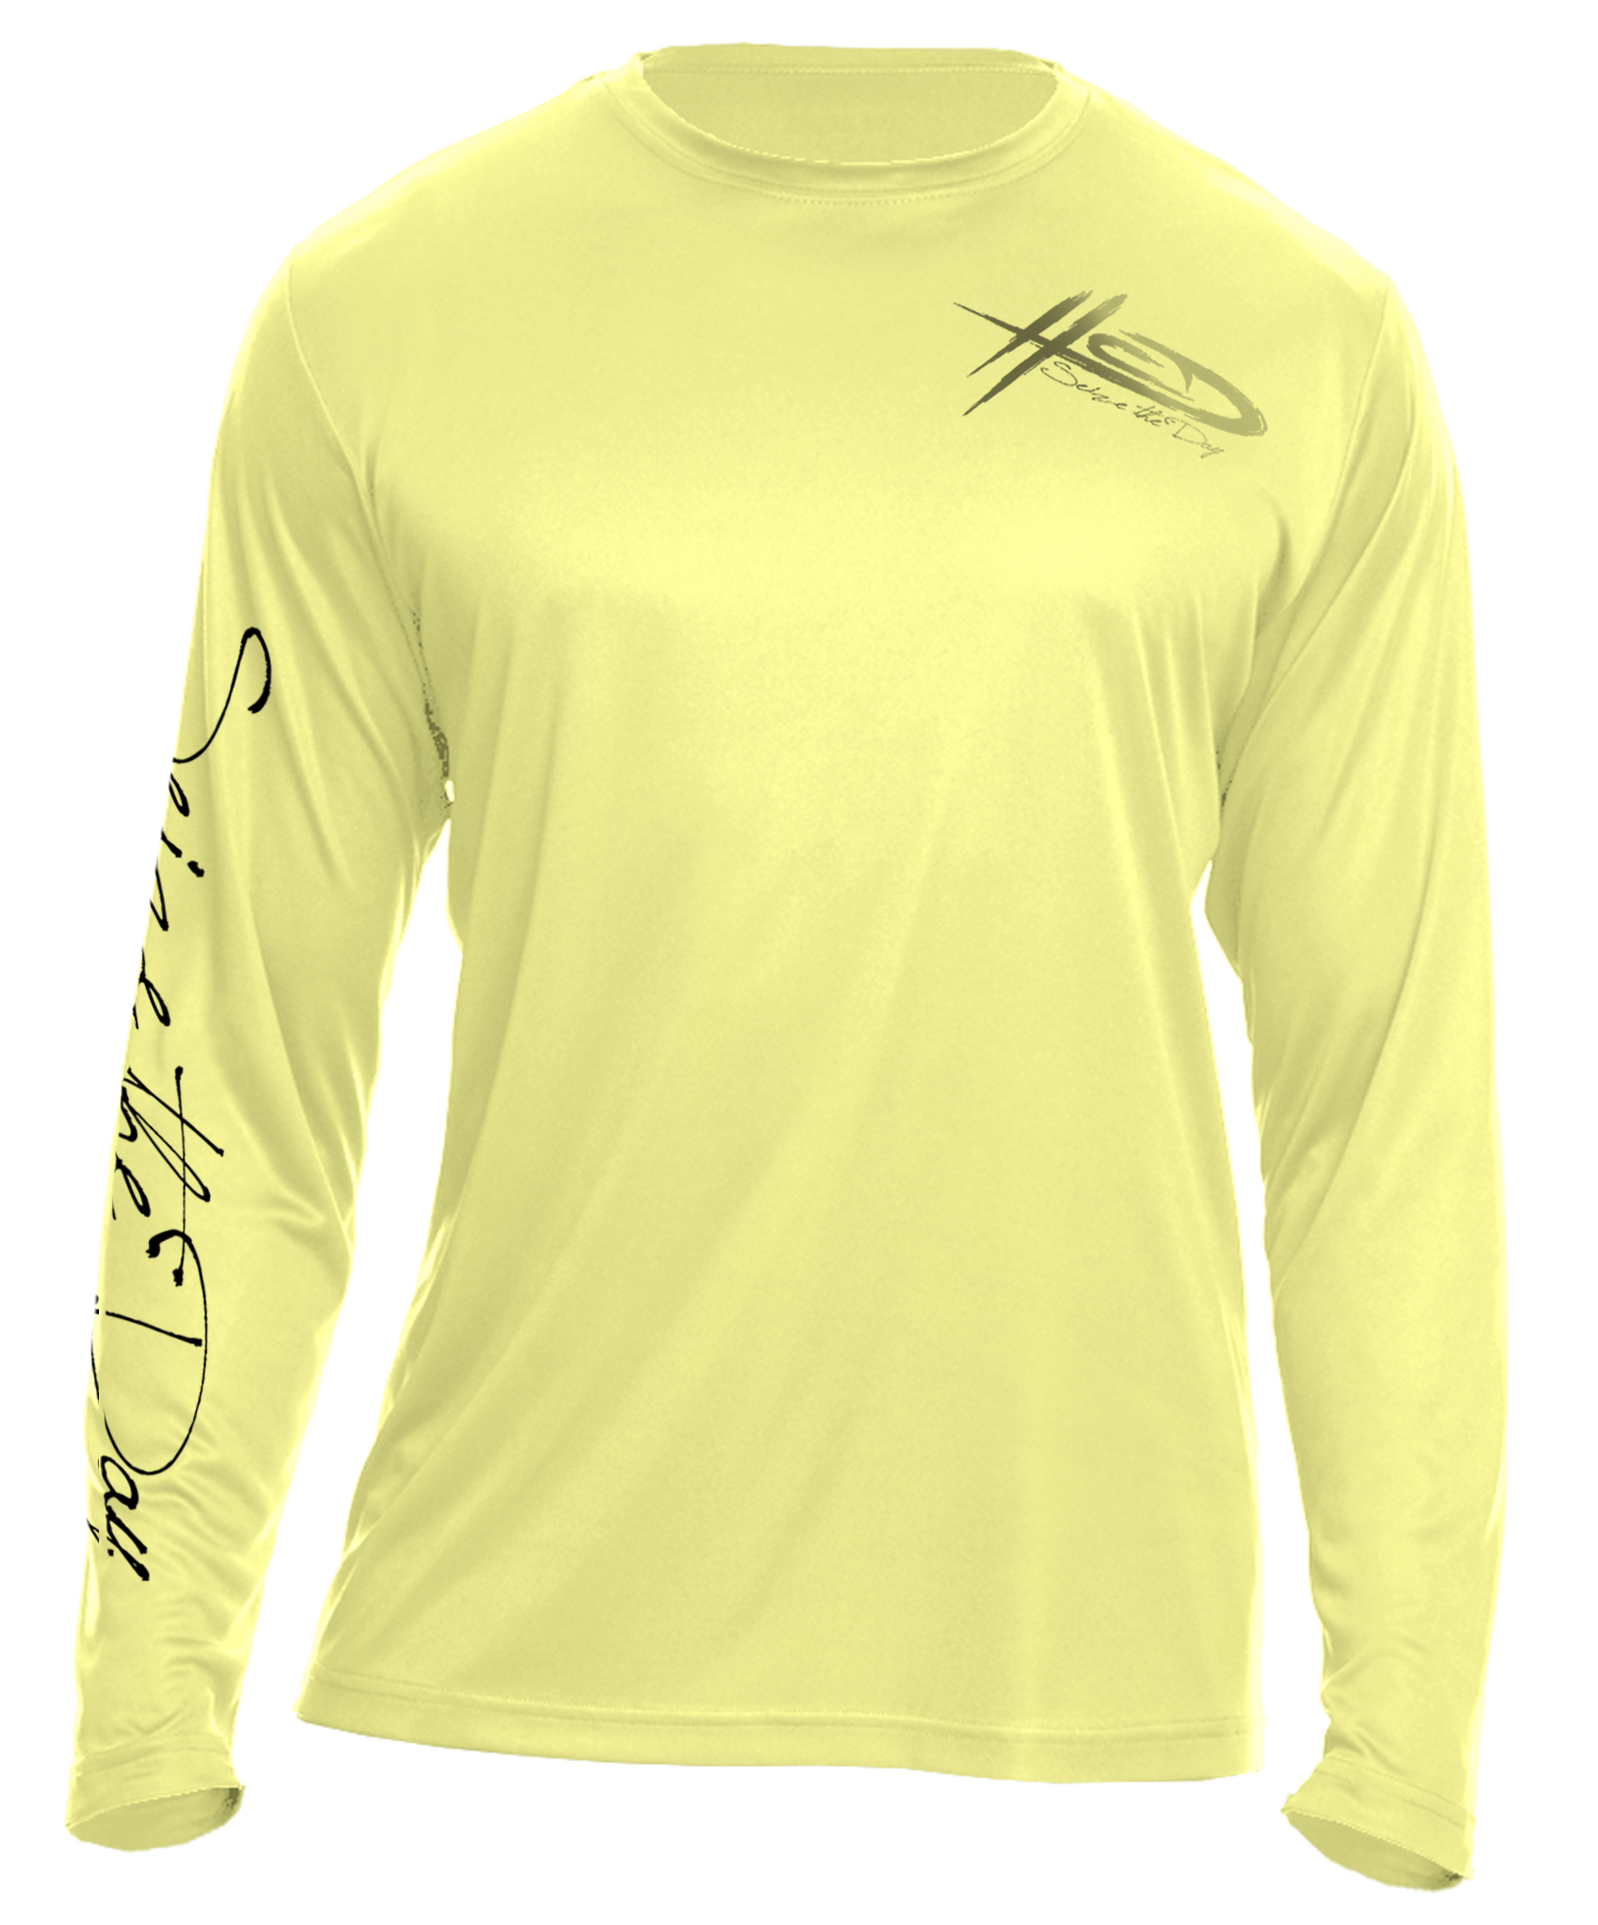 afee9f8c The Silver King - UV Sun Protection Shirt - Long Sleeve UPF 30 - Hooked  Carpe Diem